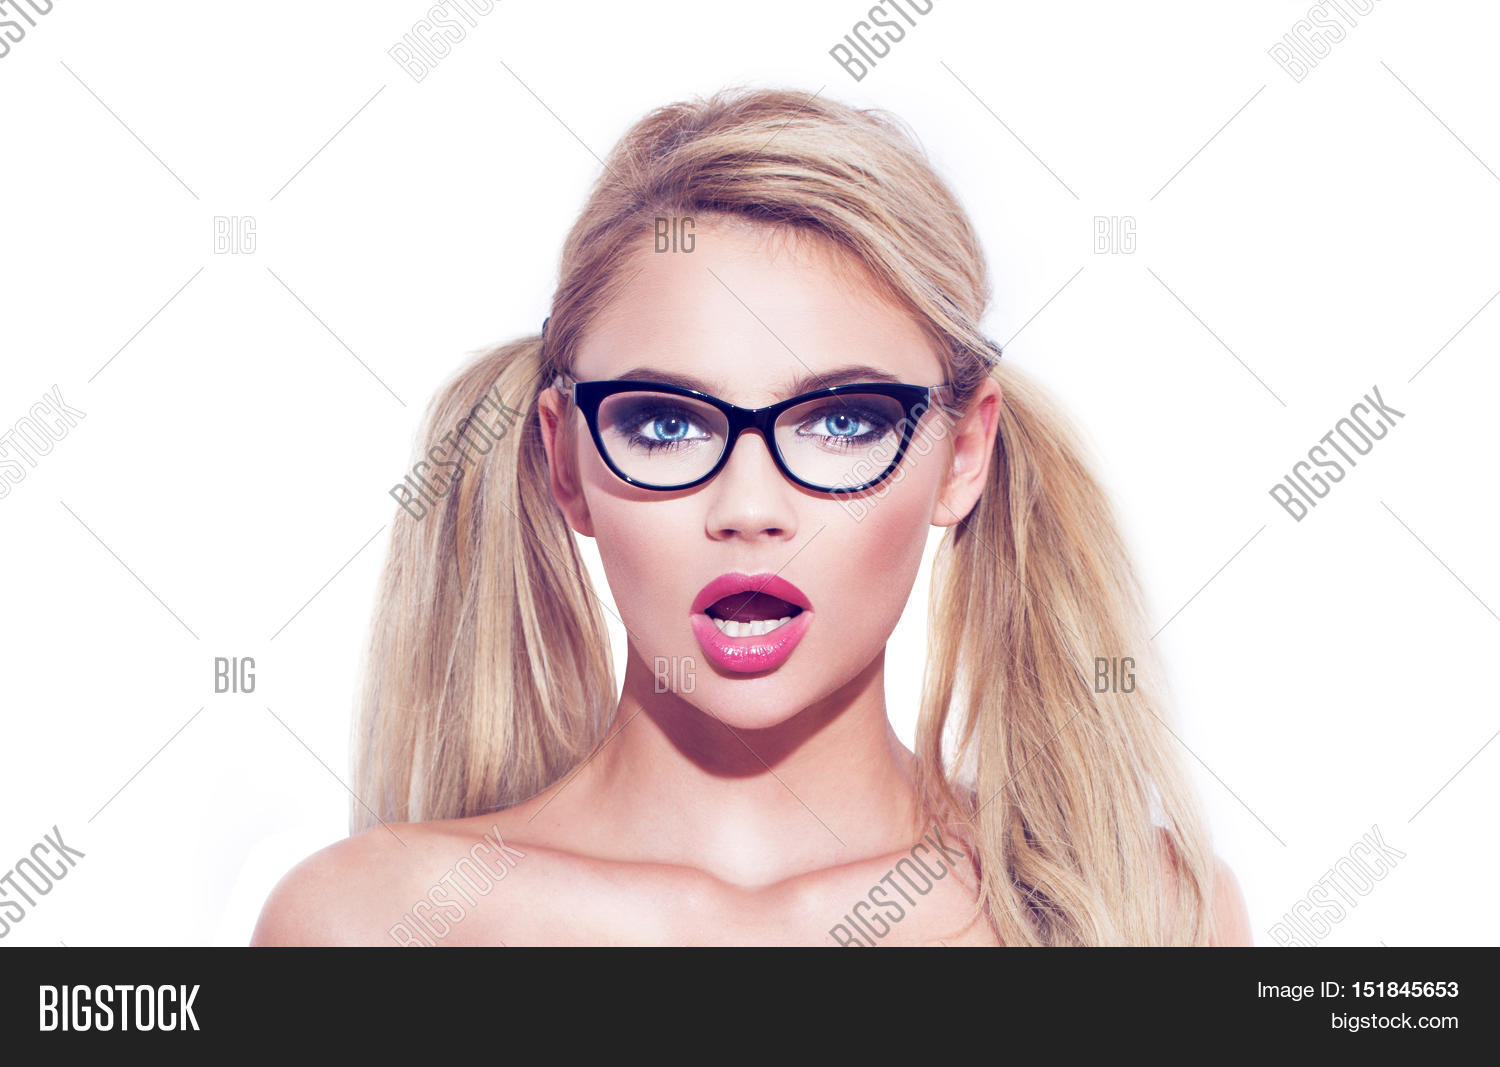 hot Pigtails boobs glasses